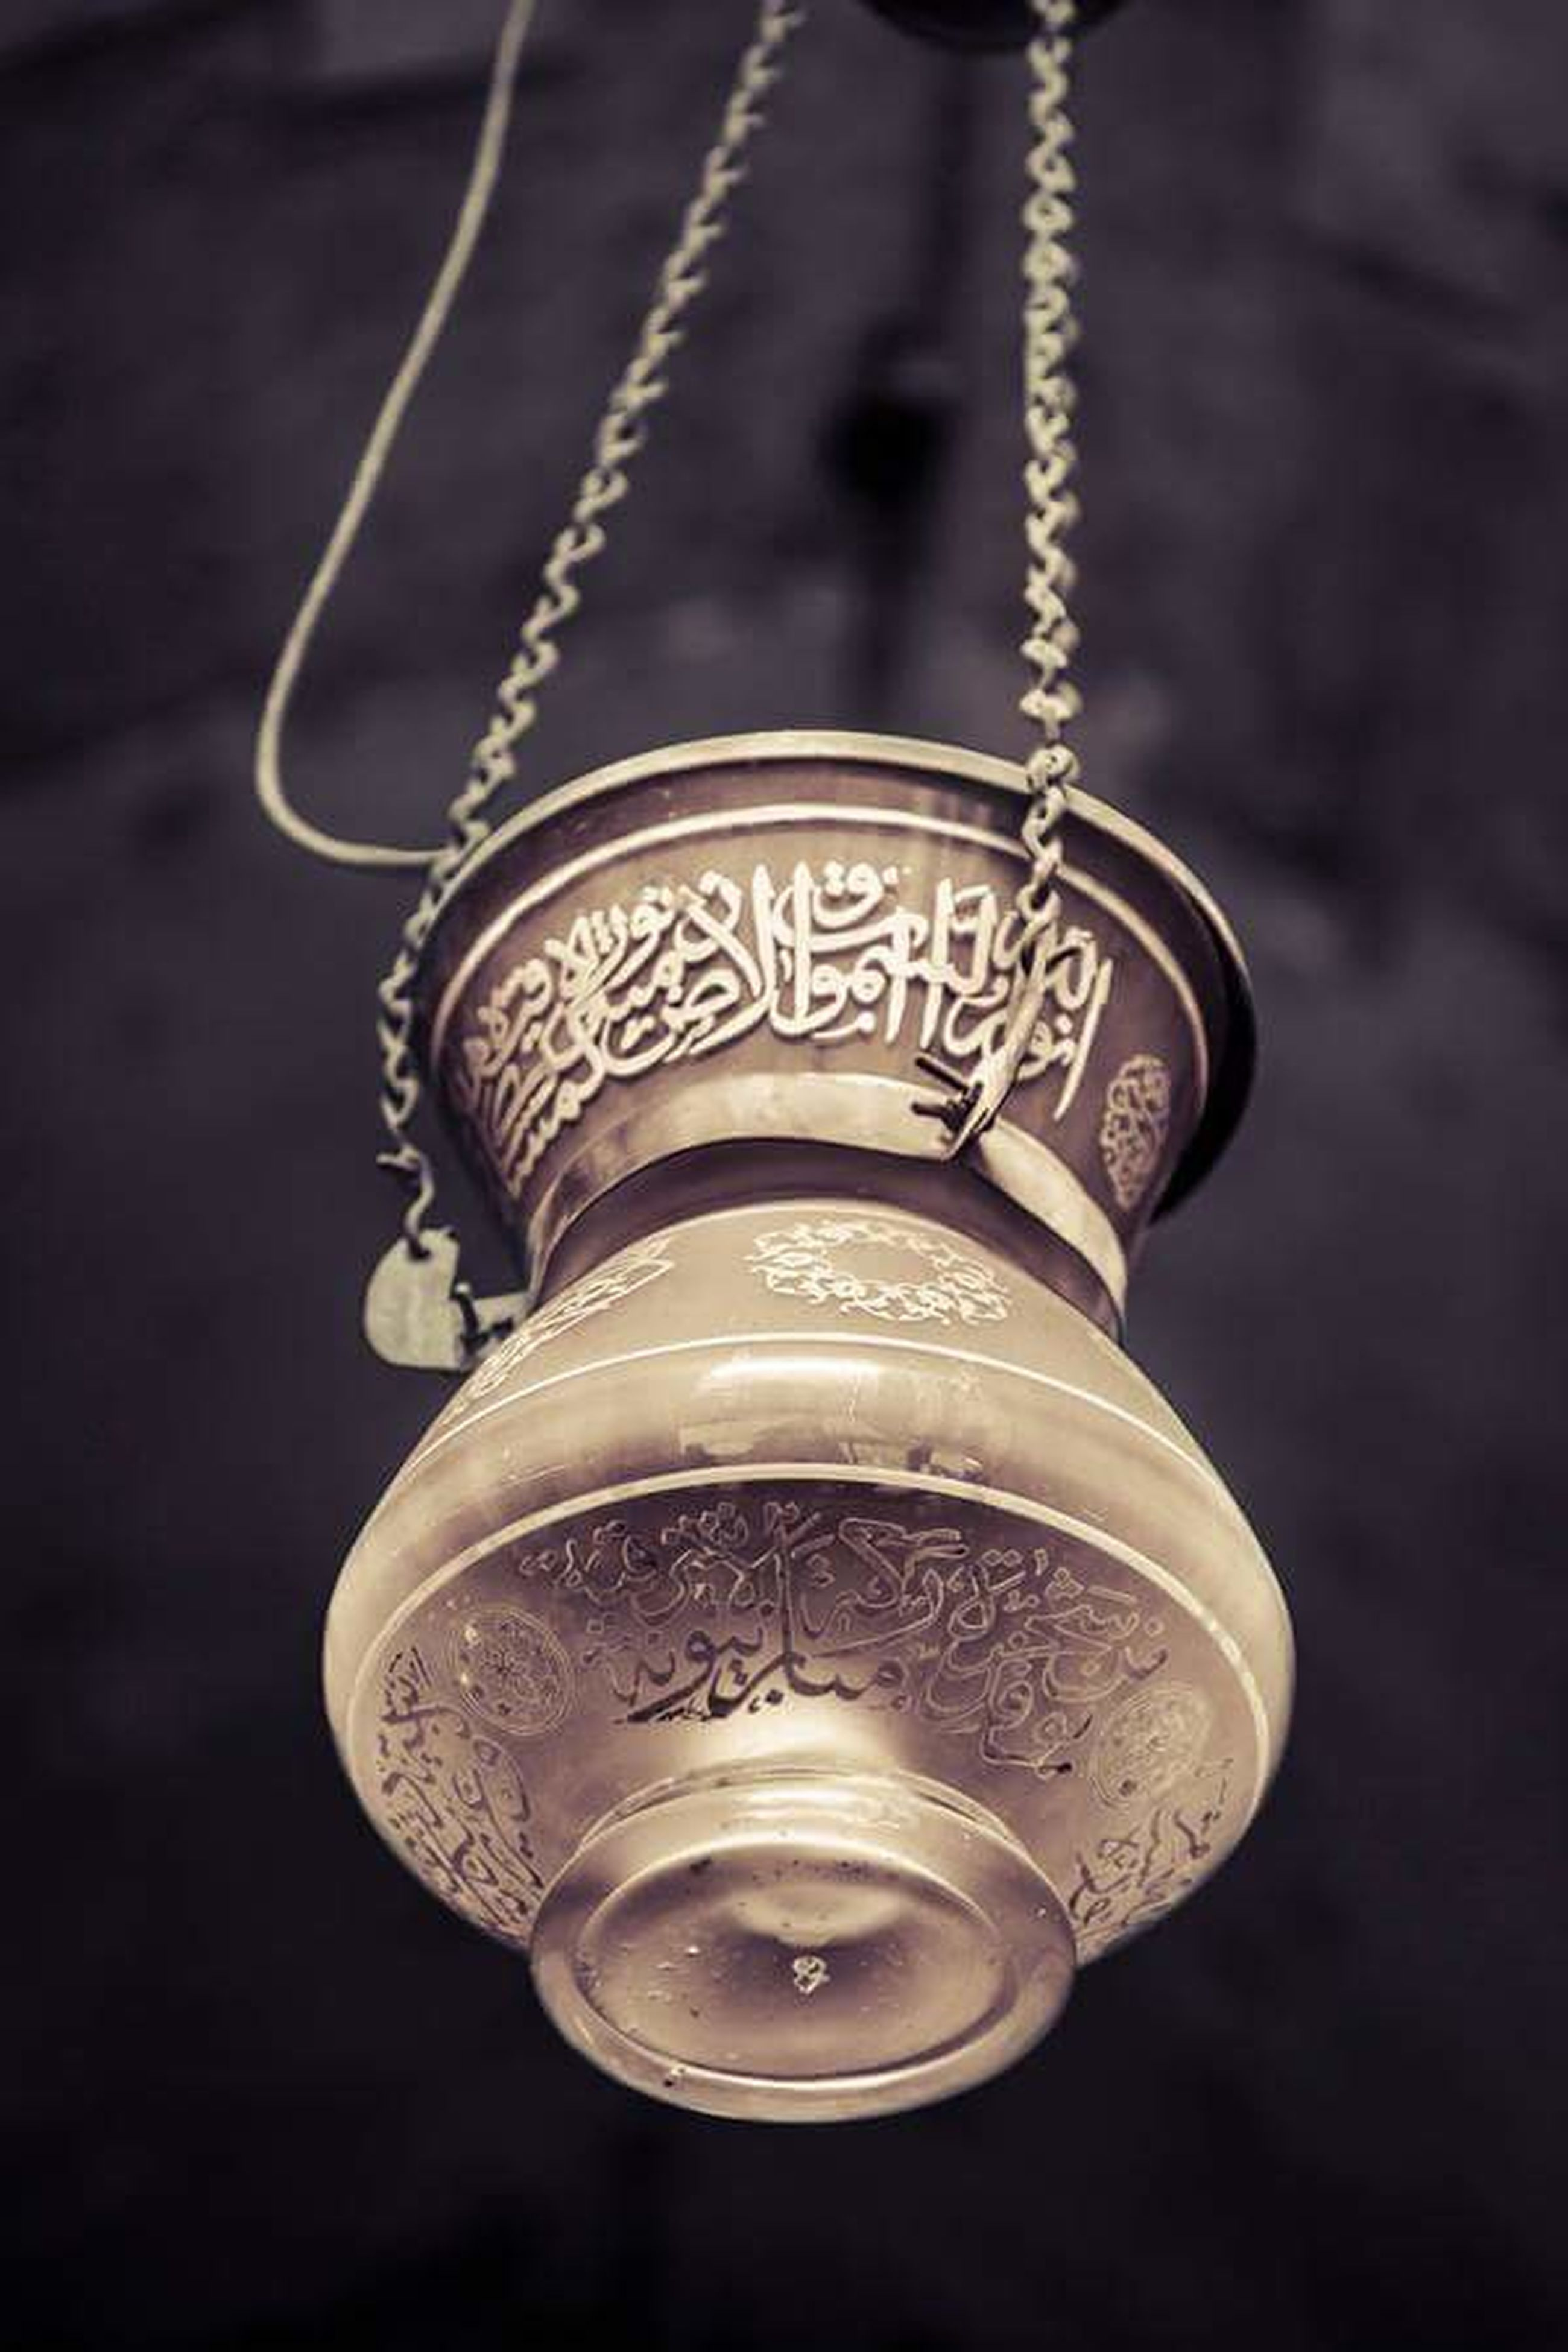 close-up, indoors, metal, single object, focus on foreground, still life, metallic, old-fashioned, hanging, lighting equipment, no people, electricity, selective focus, light bulb, man made object, table, text, old, technology, retro styled